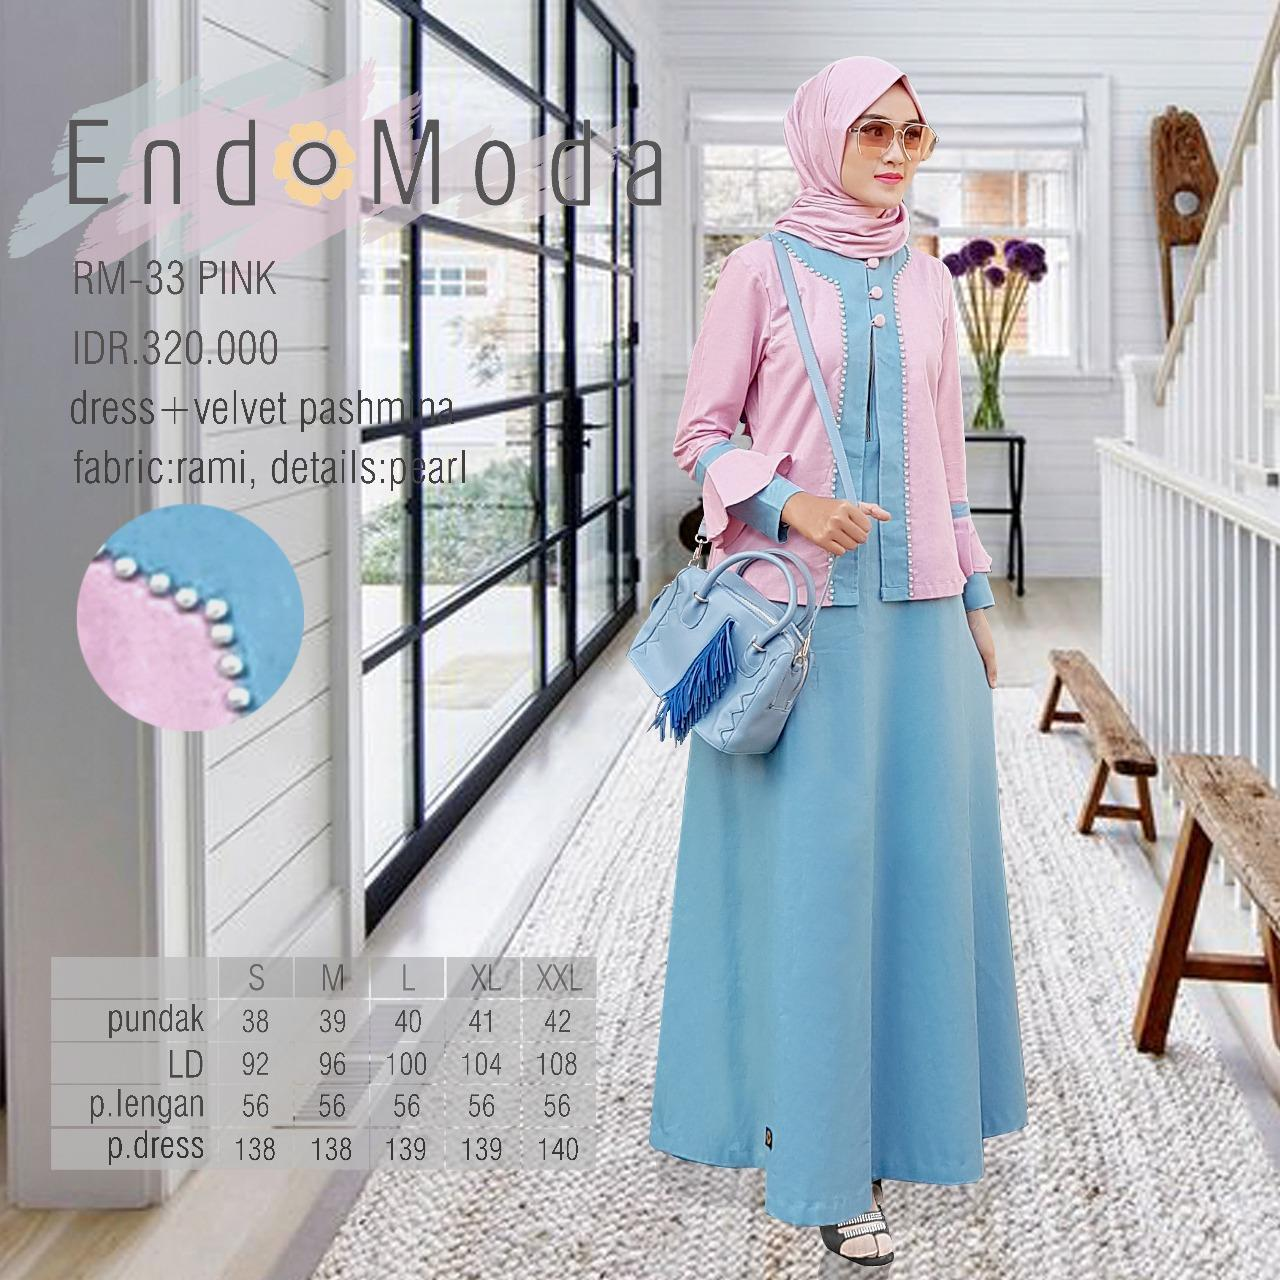 Gamis Endomoda RM 33 pink Tosca